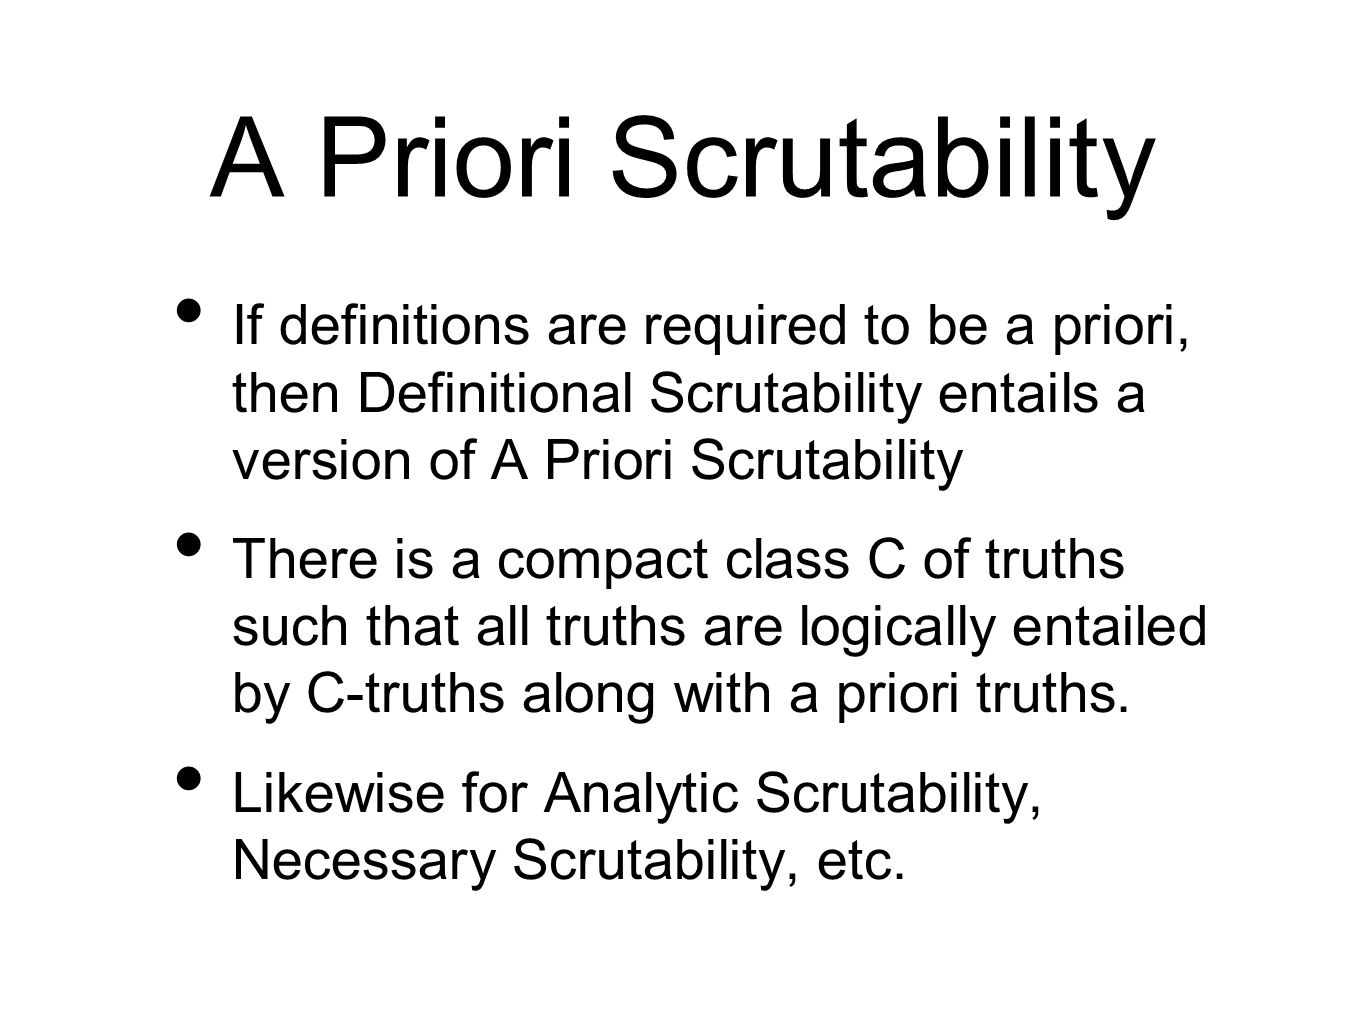 A Priori Scrutability If definitions are required to be a priori, then Definitional Scrutability entails a version of A Priori Scrutability.